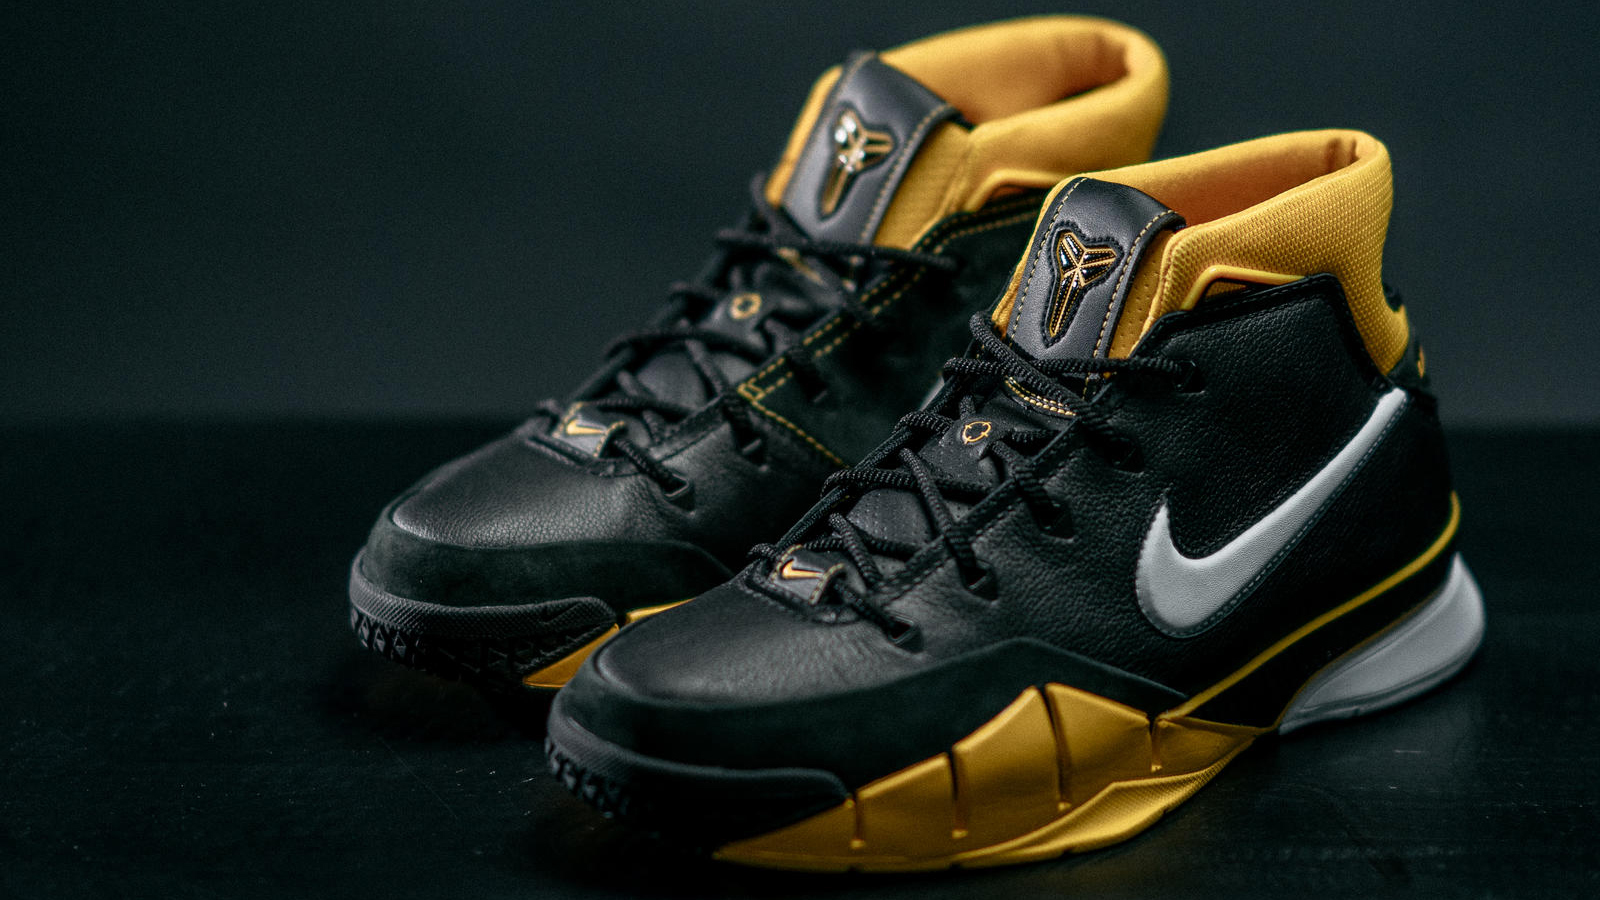 sale retailer be4df 37958 Kobe Bryant wasn t originally on board with retro ing his classic Nike Zoom  Kobe 1